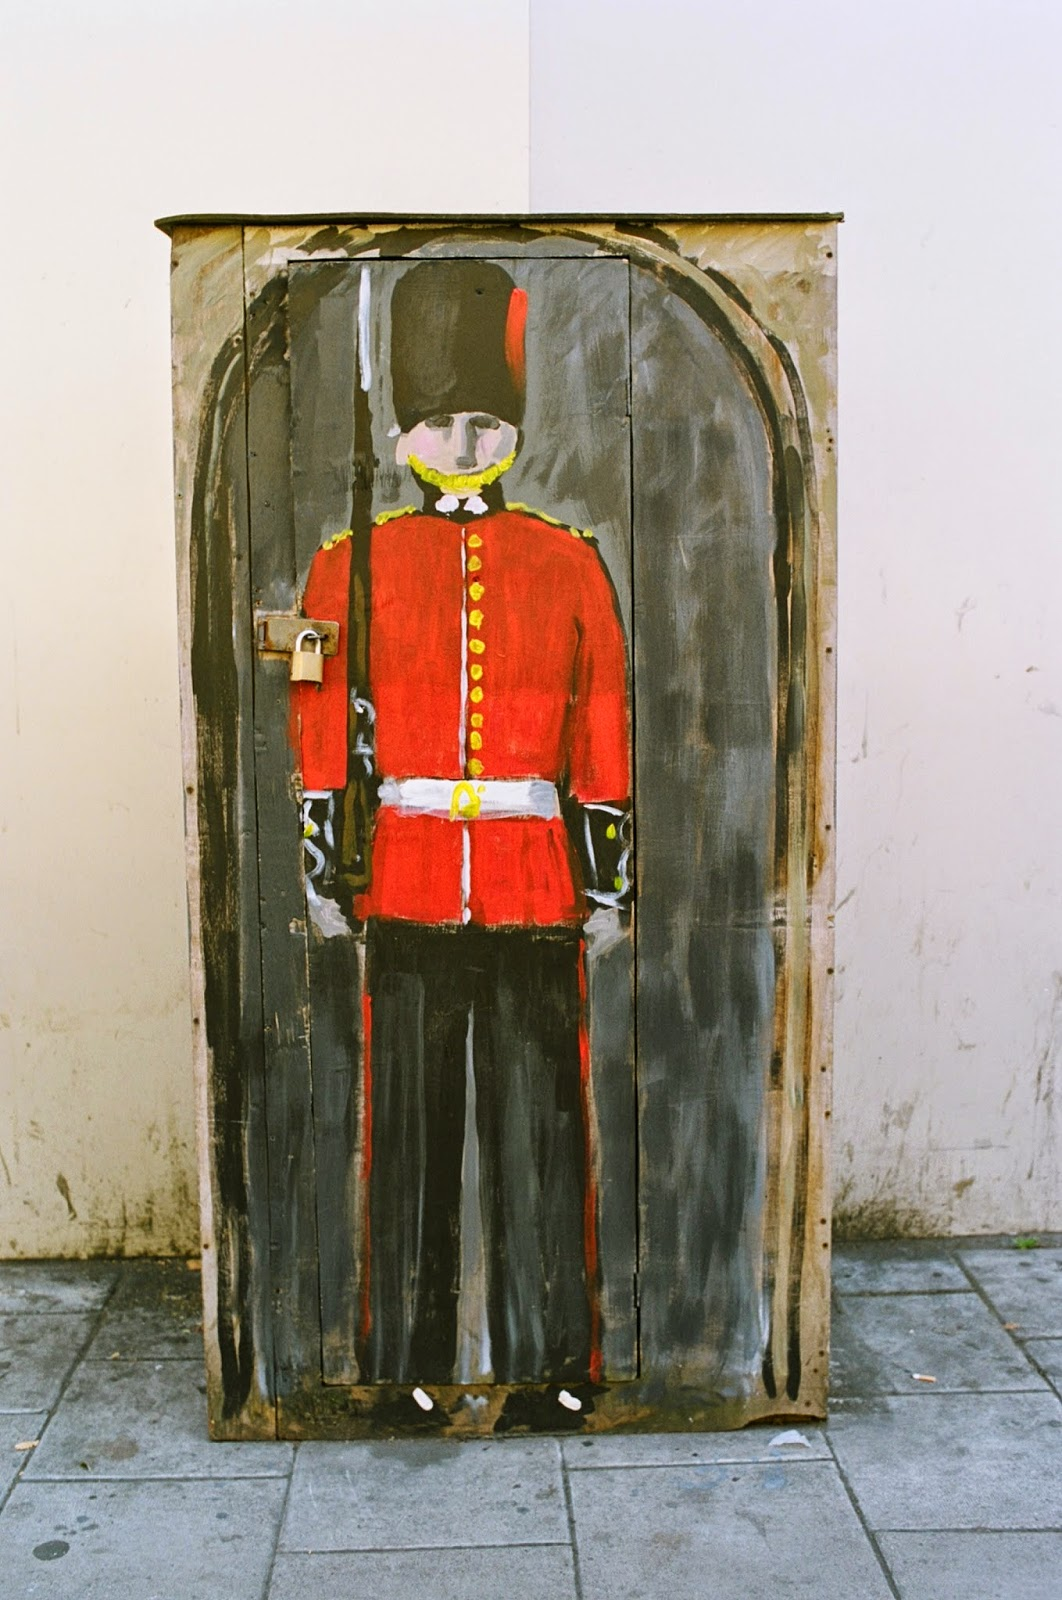 STREET ART, SENTRY BOX, GUARDSMAN, STREET FURNITURE, LAMBETH NORTH, LONDON, © VAC 100 DAYS / 4  MILLION CONVERSATIONS